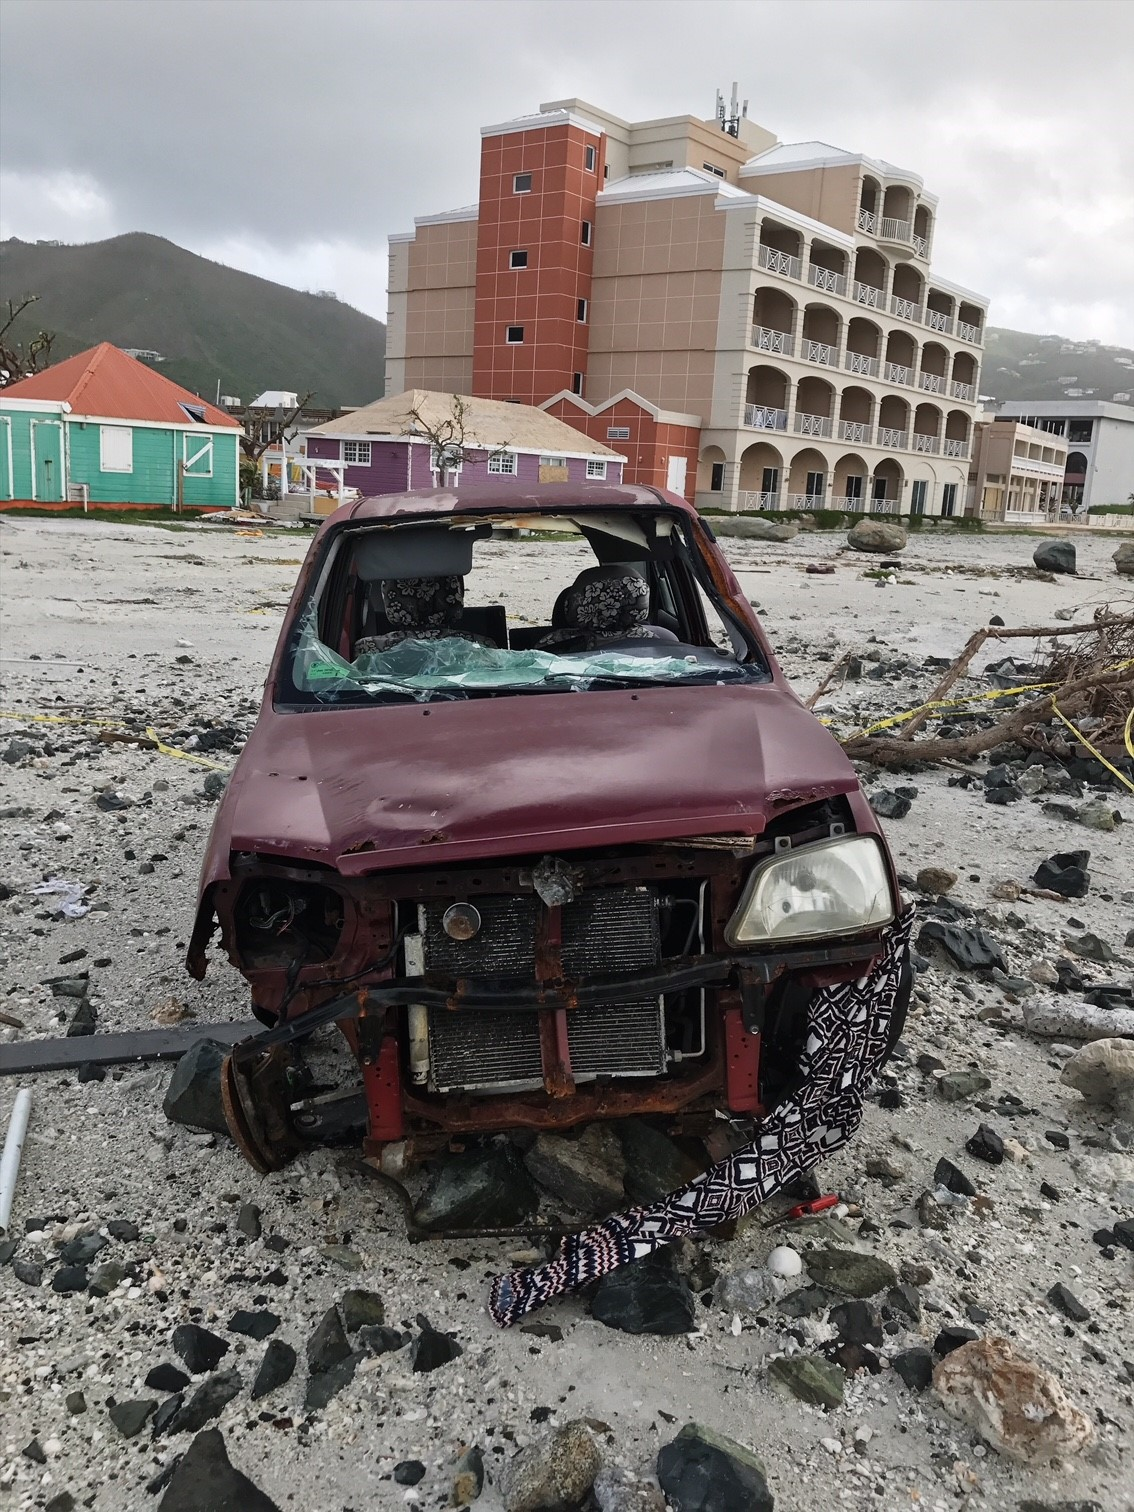 Houses, businesses, cars destroyed in the BVI following hurricane Irma